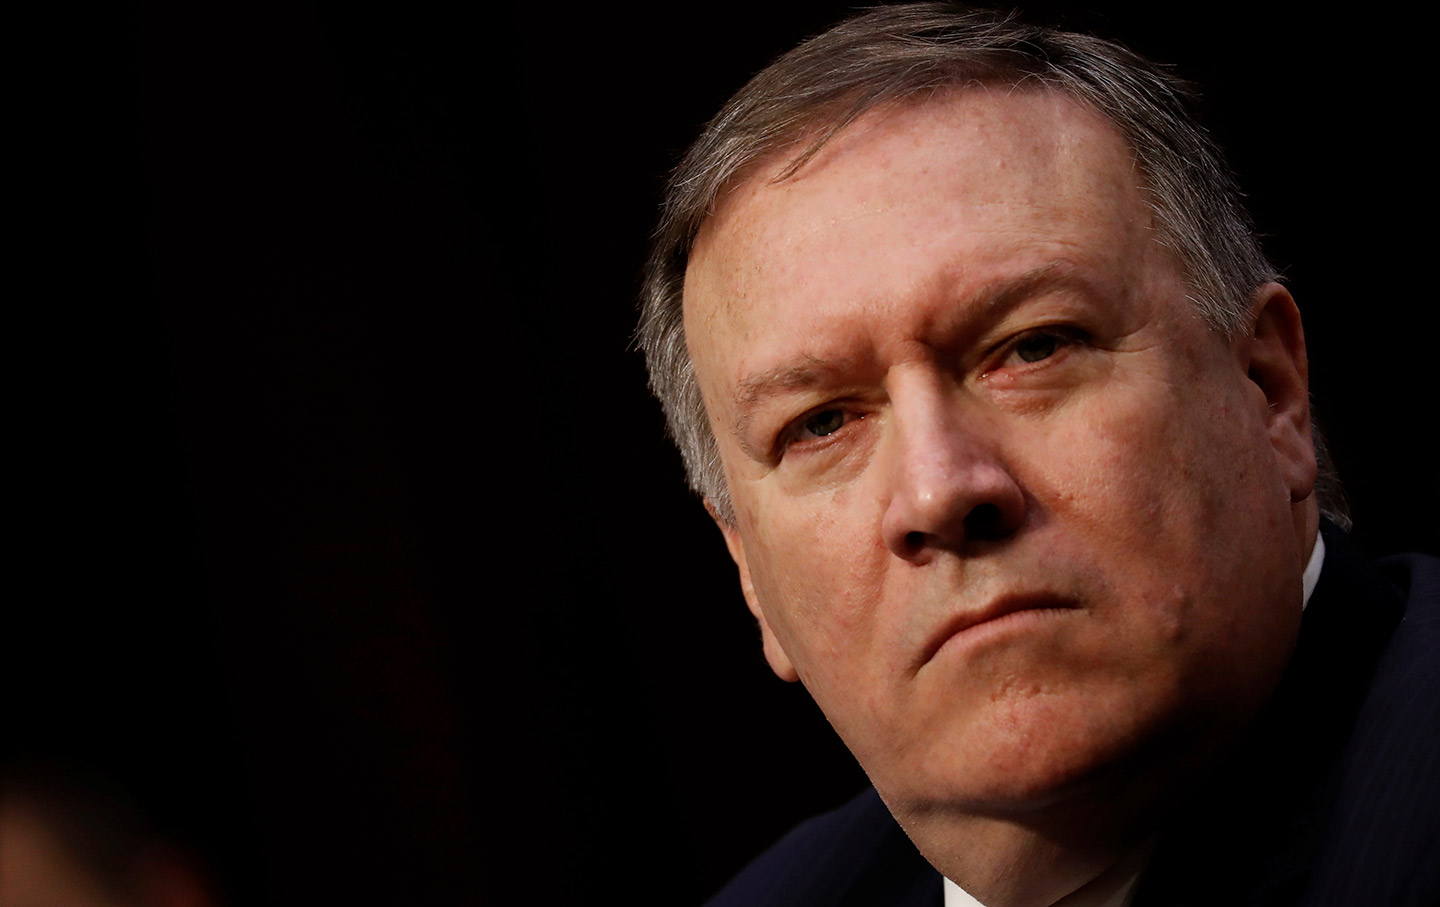 Pompeo believes China wants to surpass US in nuclear trafficking